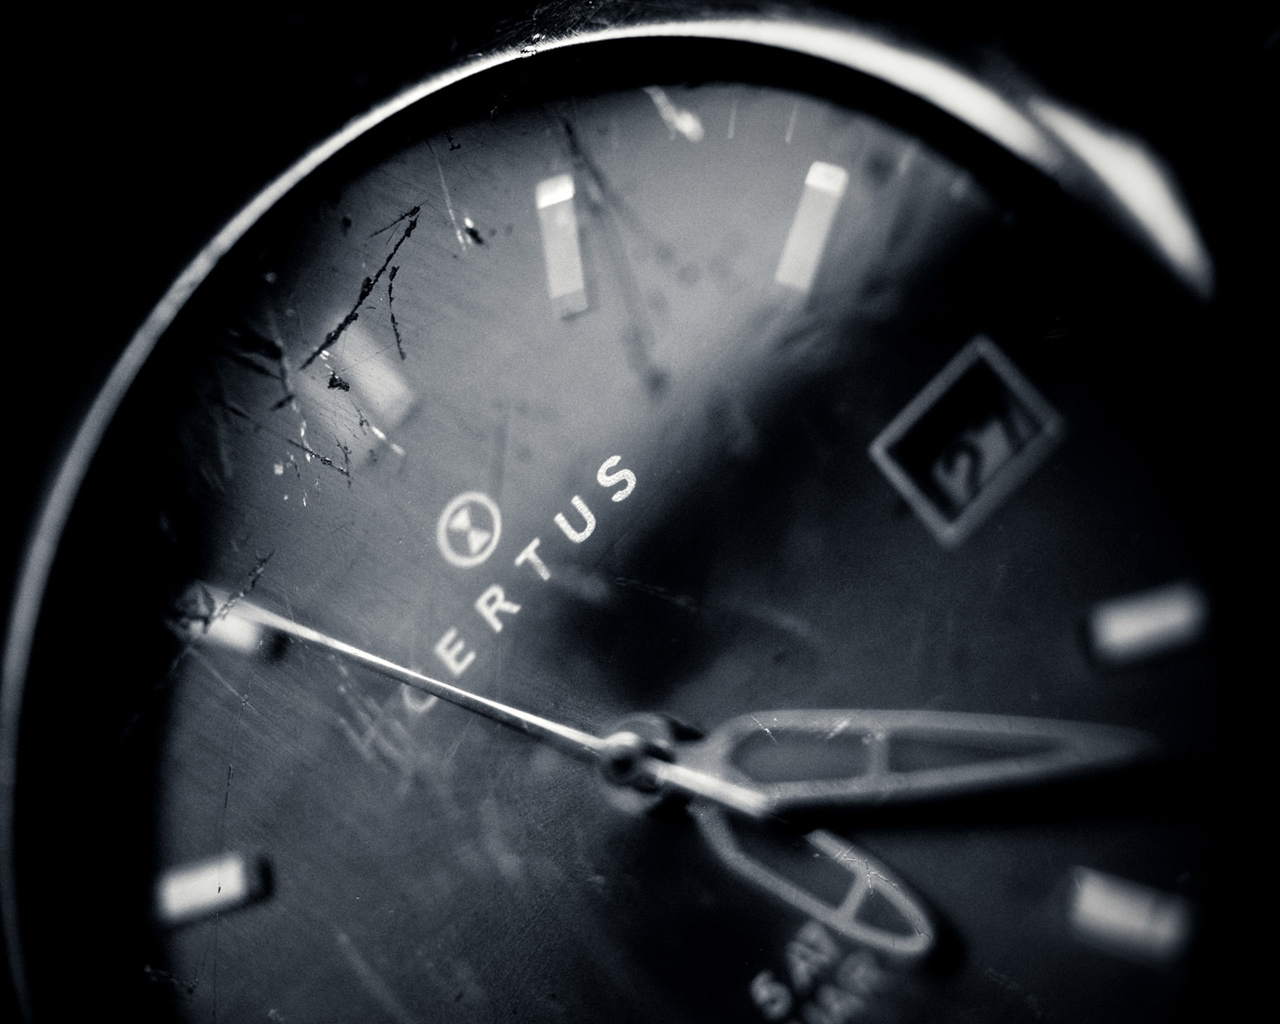 Old Certus watch